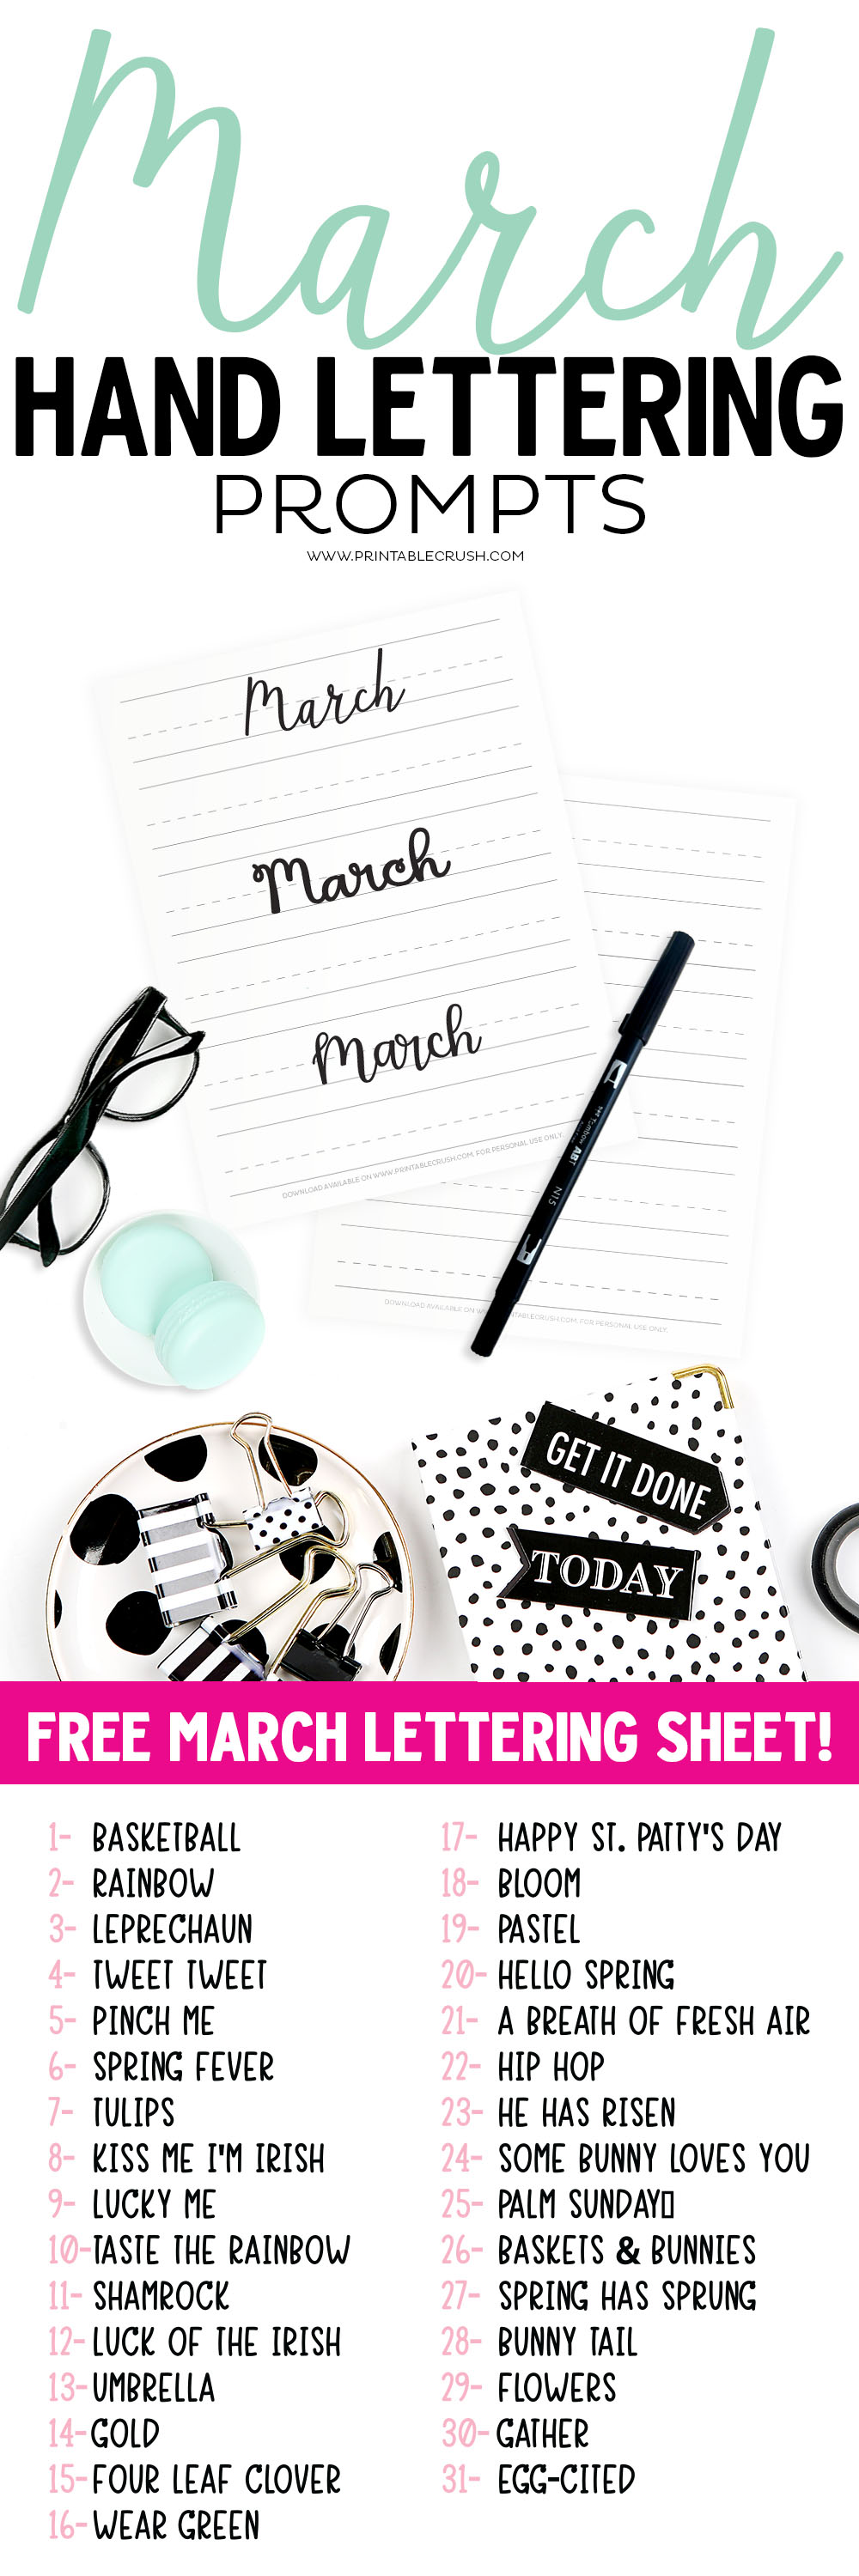 Get 31 MARCH Hand Lettering Prompts plus a FREE practice sheet in this blog series to improve your hand lettering skills. Plus, learn how you can get 31 days of MARCH lettering worksheets!